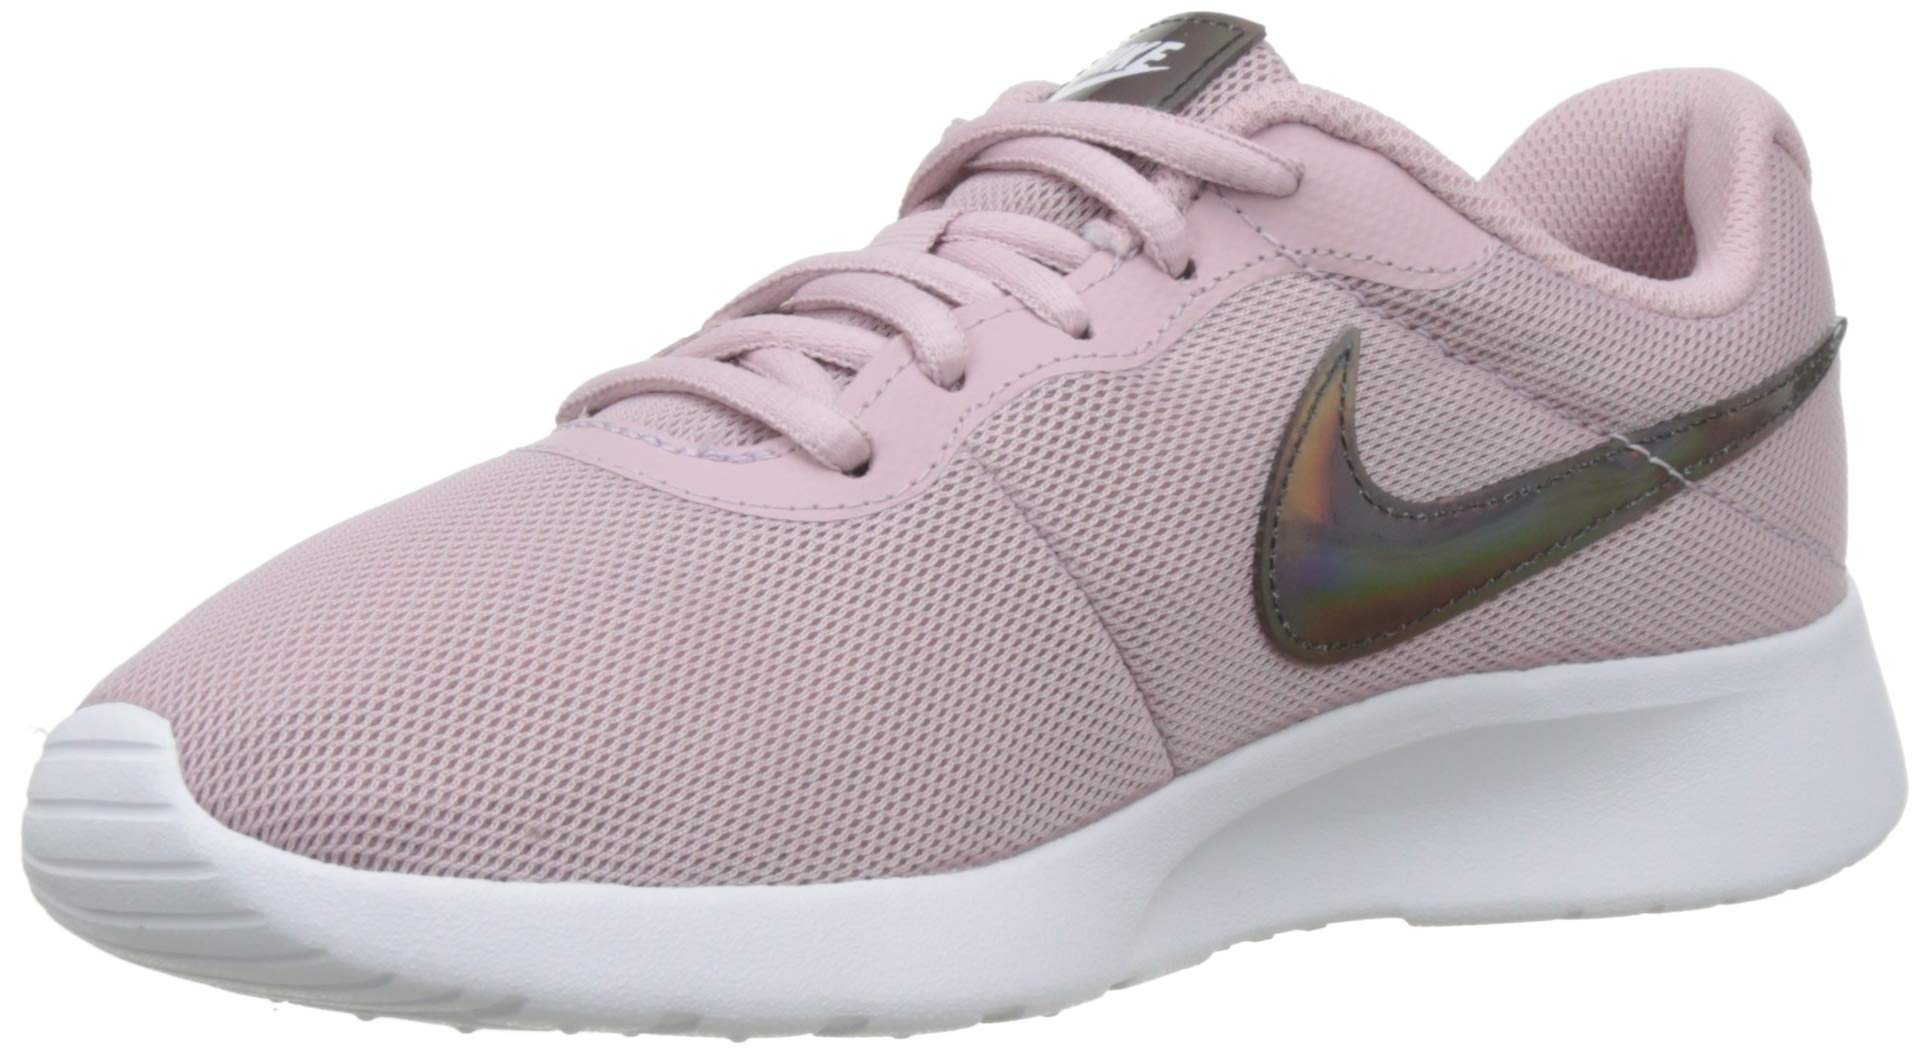 61e628553f9 Galleon - Nike Women's Tanjun Shoe Plum Chalk/White Size 8.5 M US